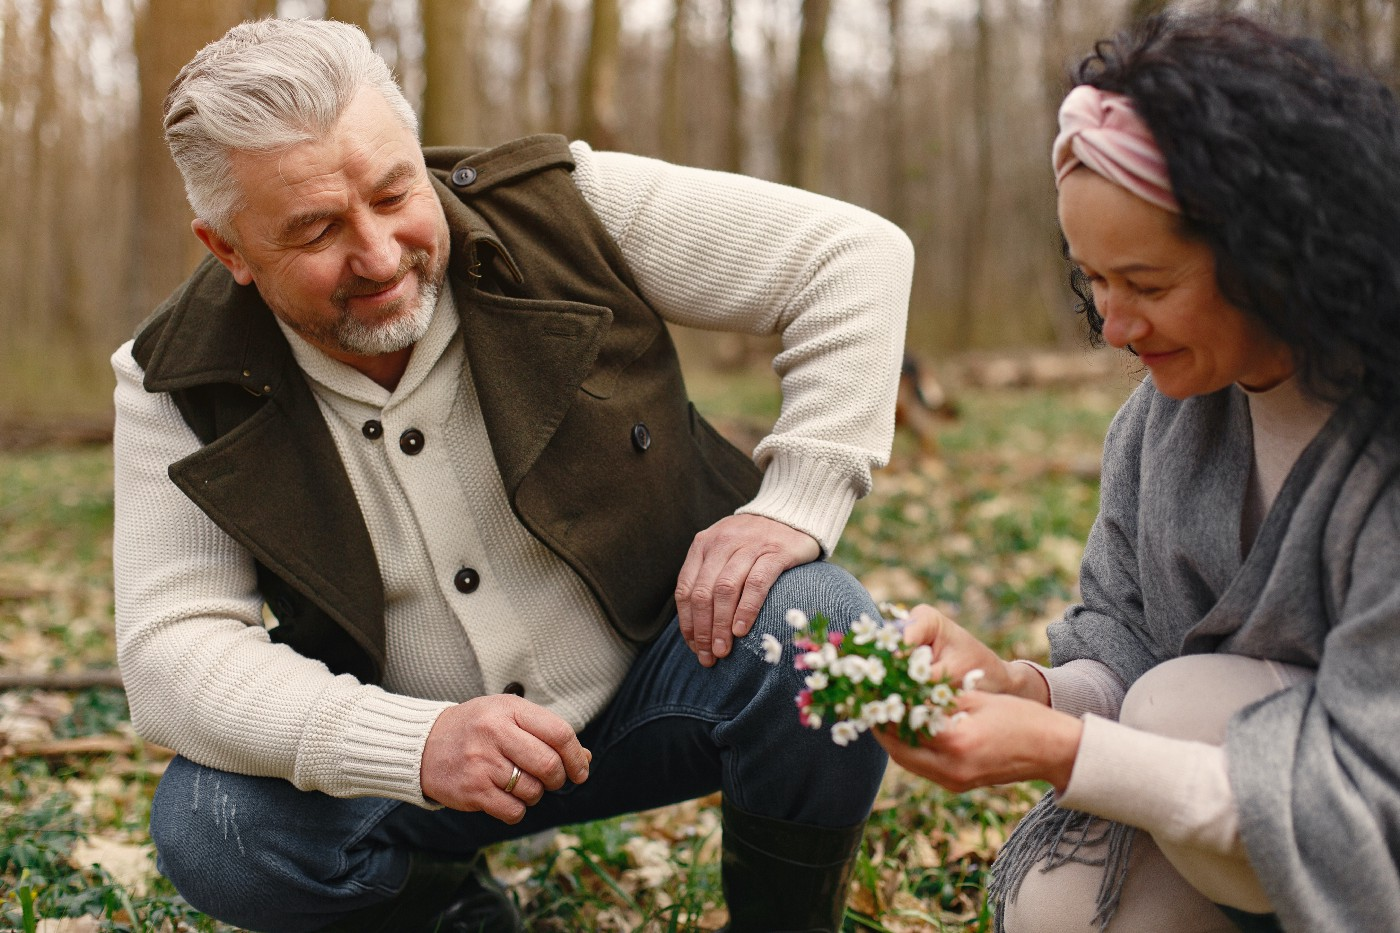 Middle aged man and woman kneel in a forest floor. The woman holds a bouquet of hand picked flowers. They look calm and happy.